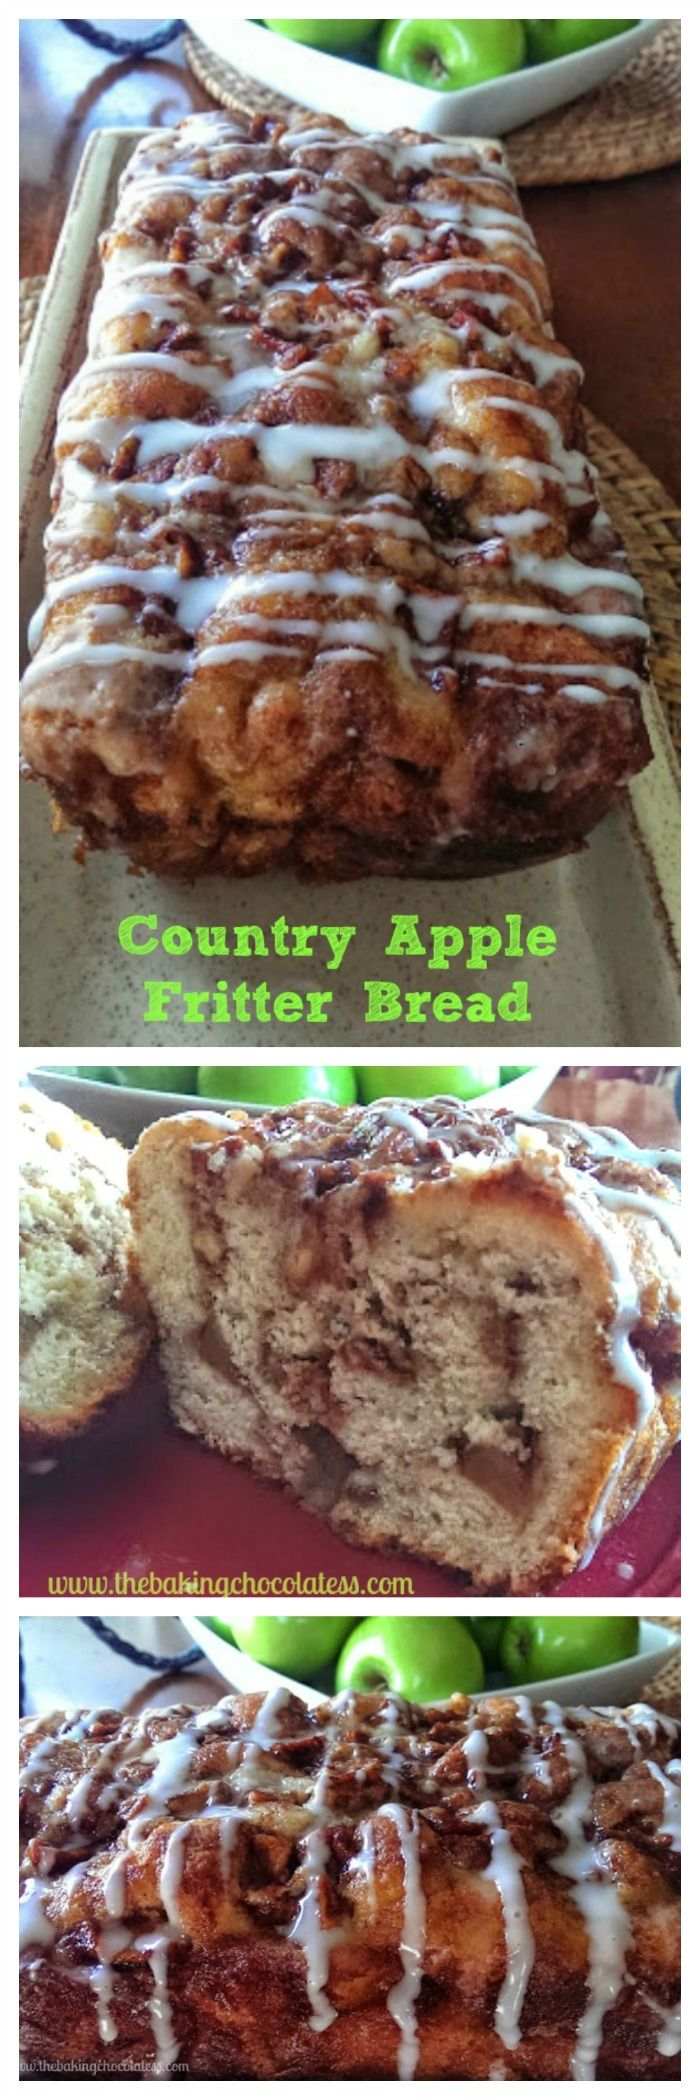 Give it up my sweet friend! You cannot resist the temptation of Awesome Country Apple Fritter Bread!!! Once you start smelling that…